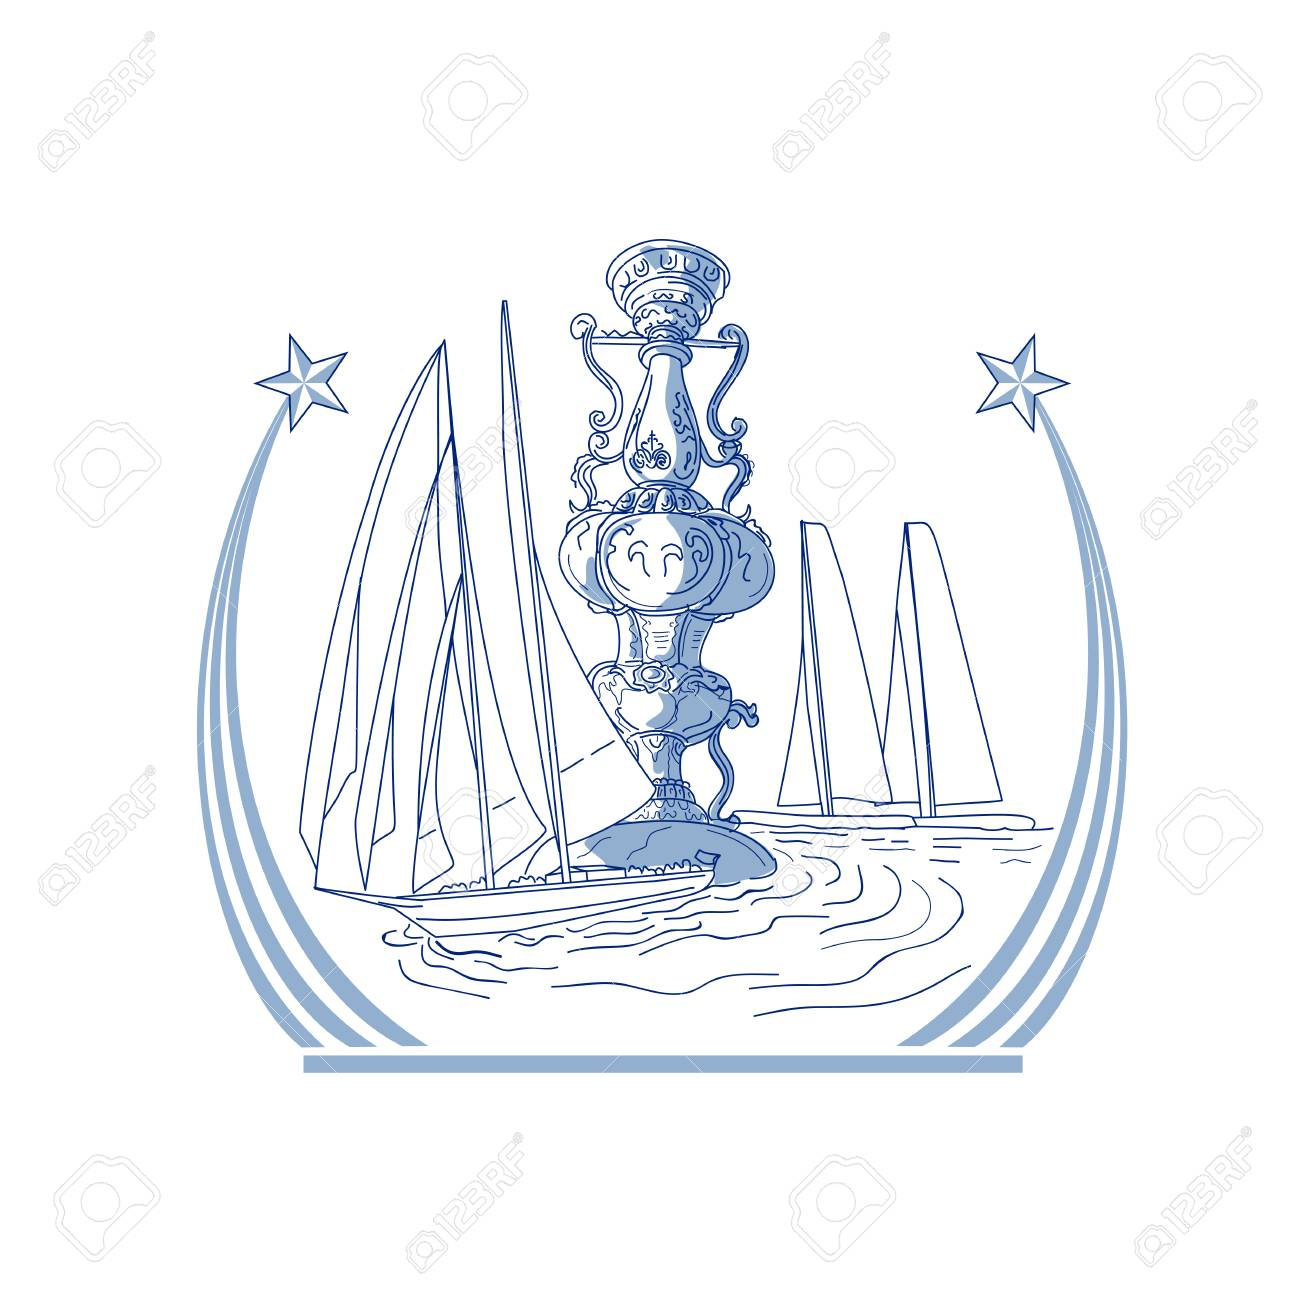 1300x1300 Drawing Sketch Style Illustration Of Three Yacht Club Match Racing